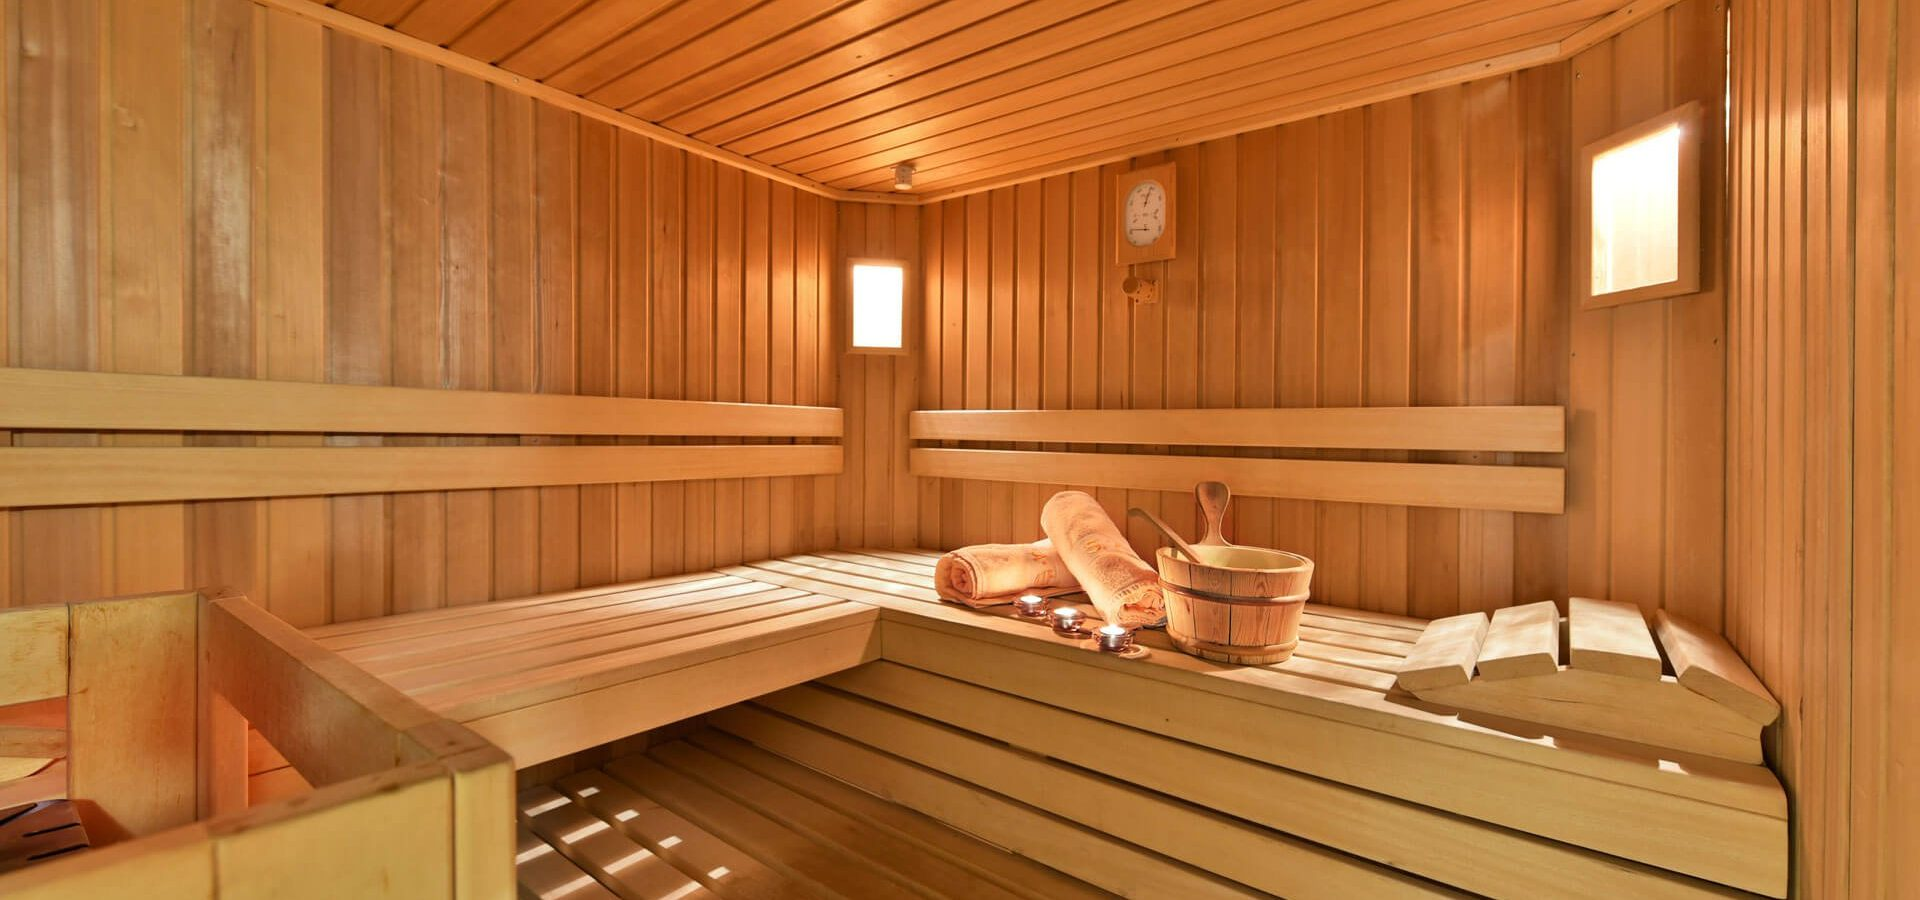 wellness-sauna-urlaub-in-meransen